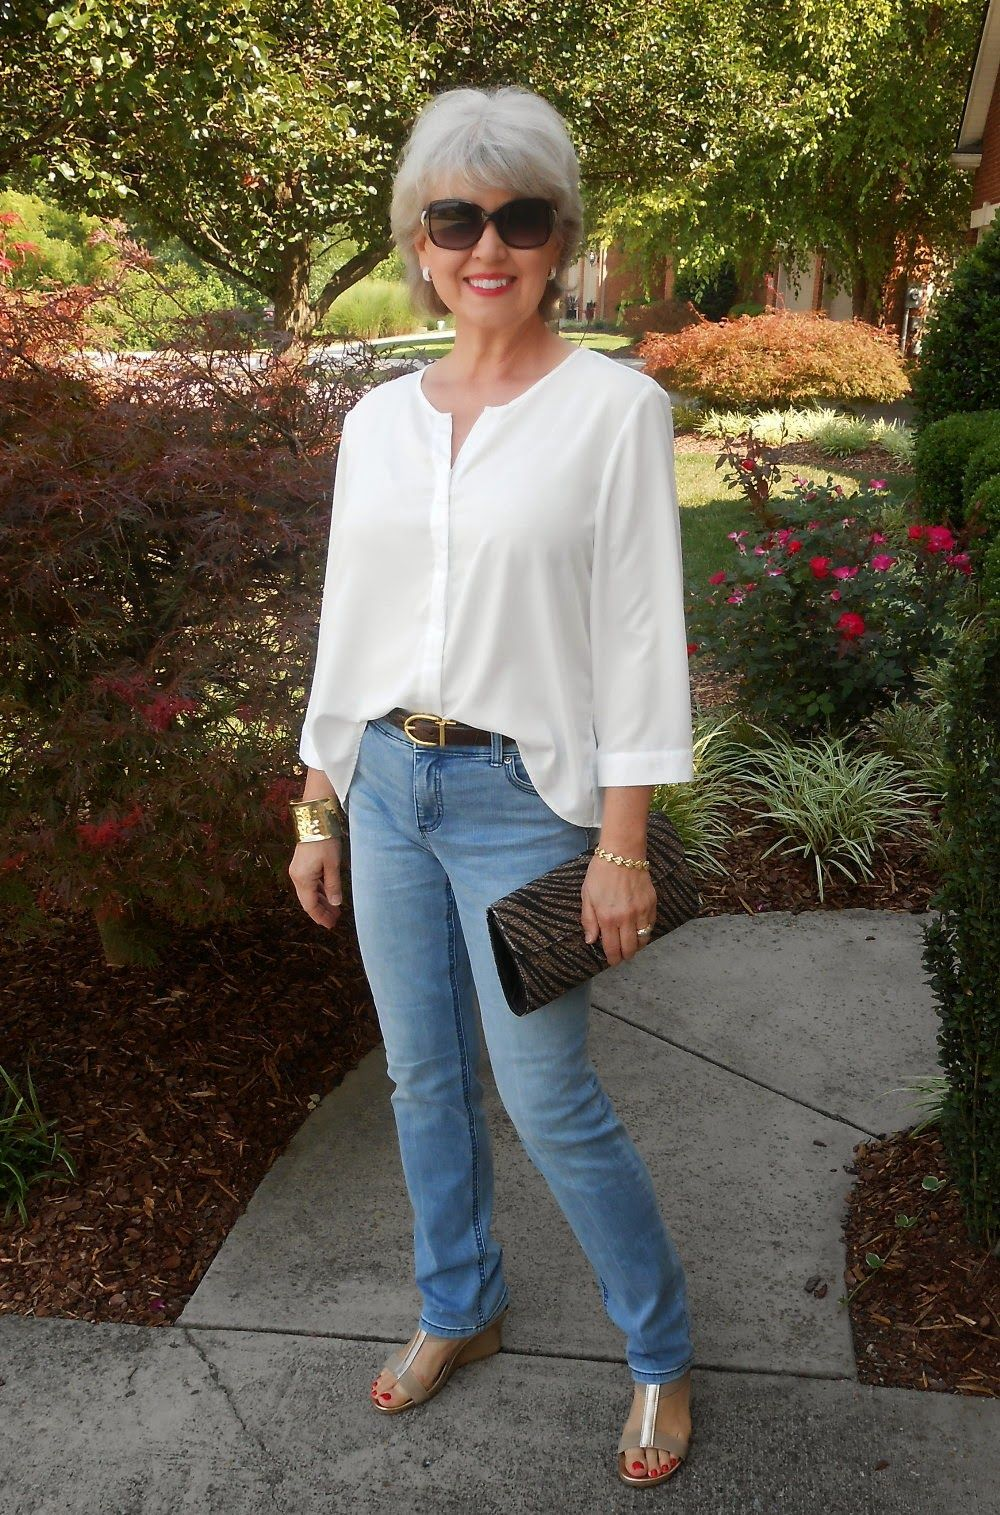 Fifty, not Frumpy: Wear It Wednesday - Shoes For All!  Over 29